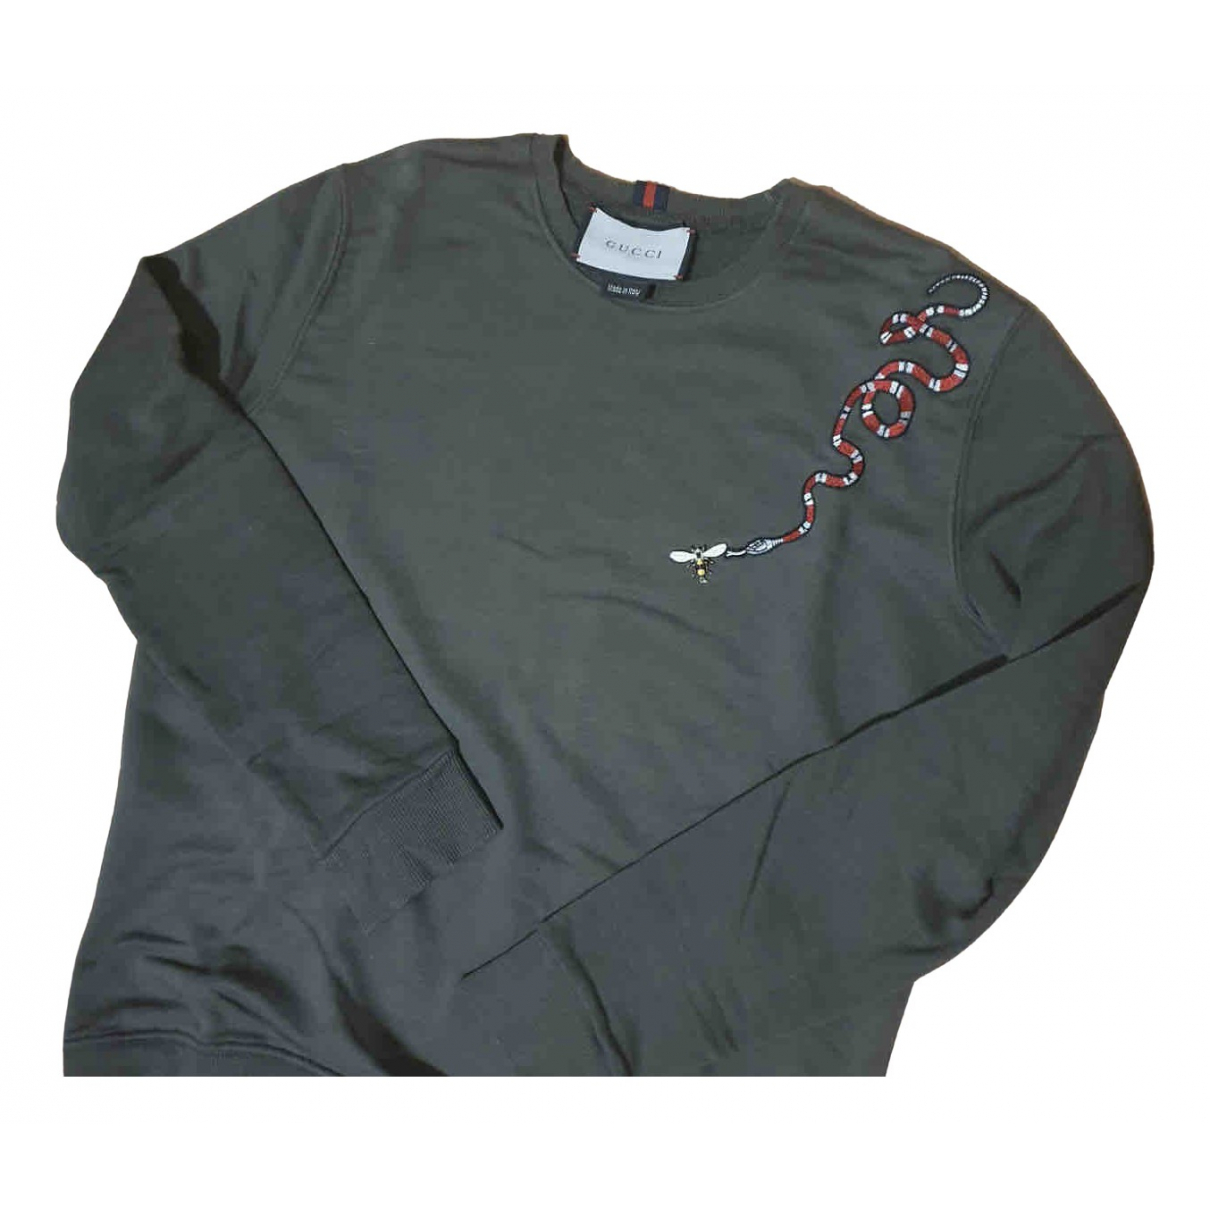 Gucci N Green Cotton Knitwear & Sweatshirts for Men S International